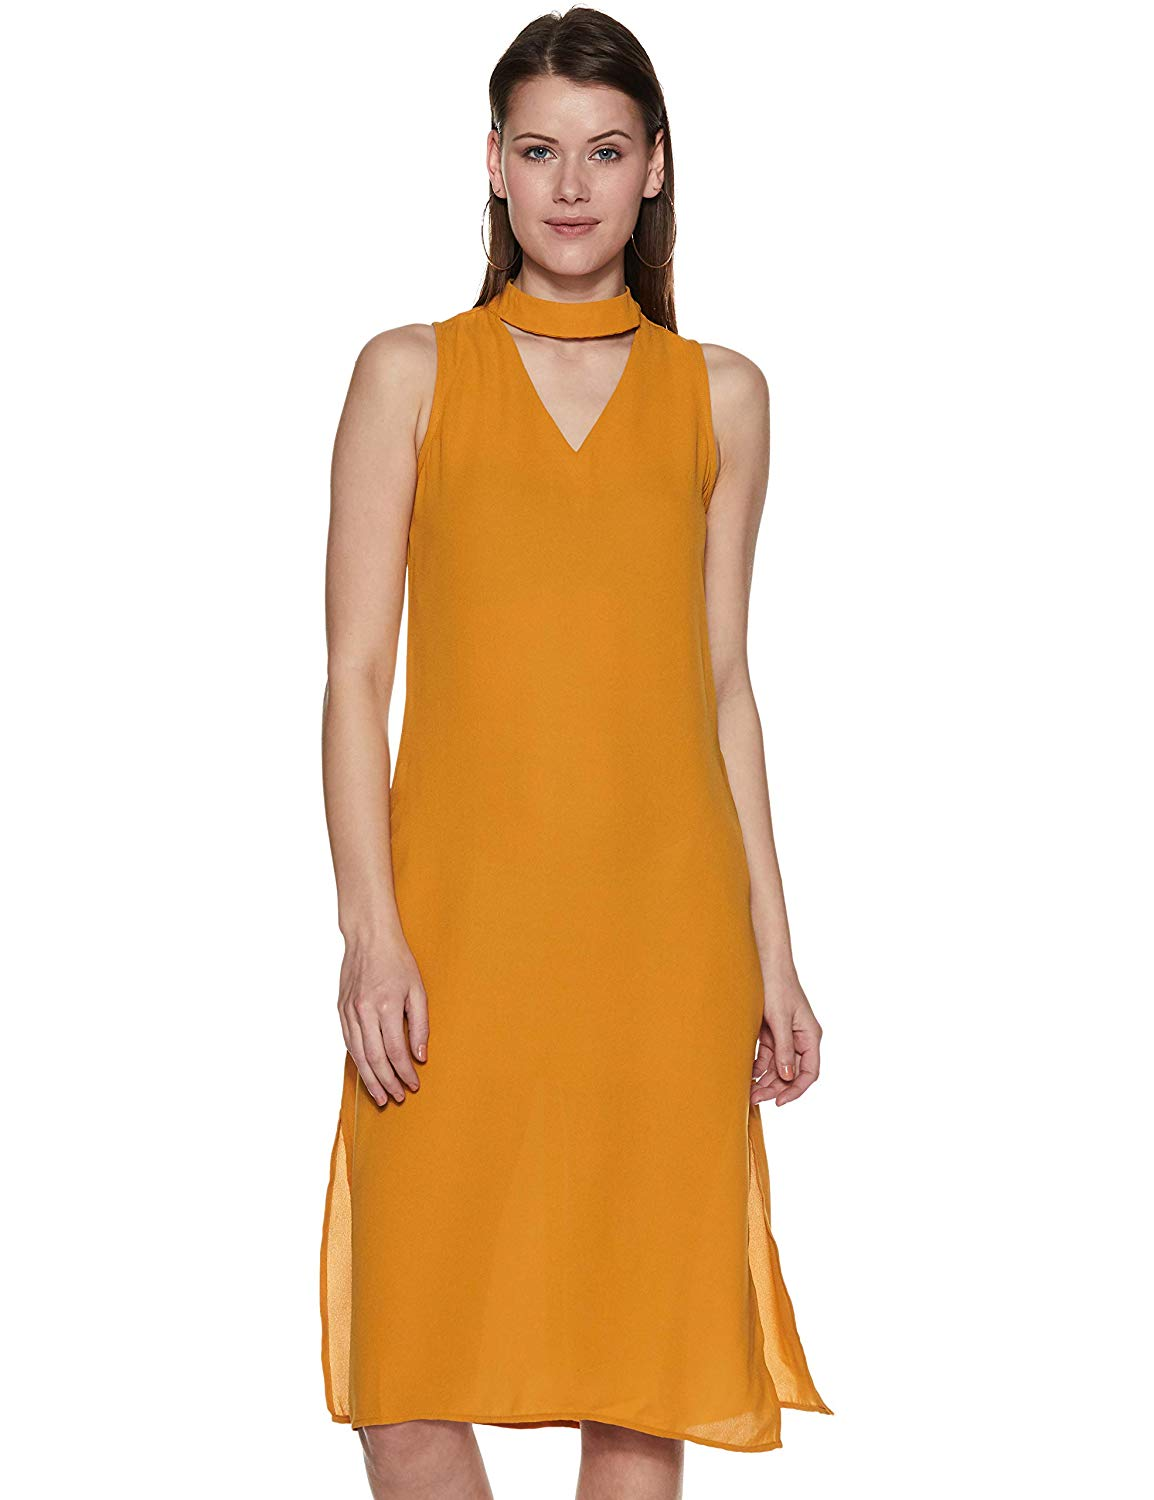 Mustard Colored Dress